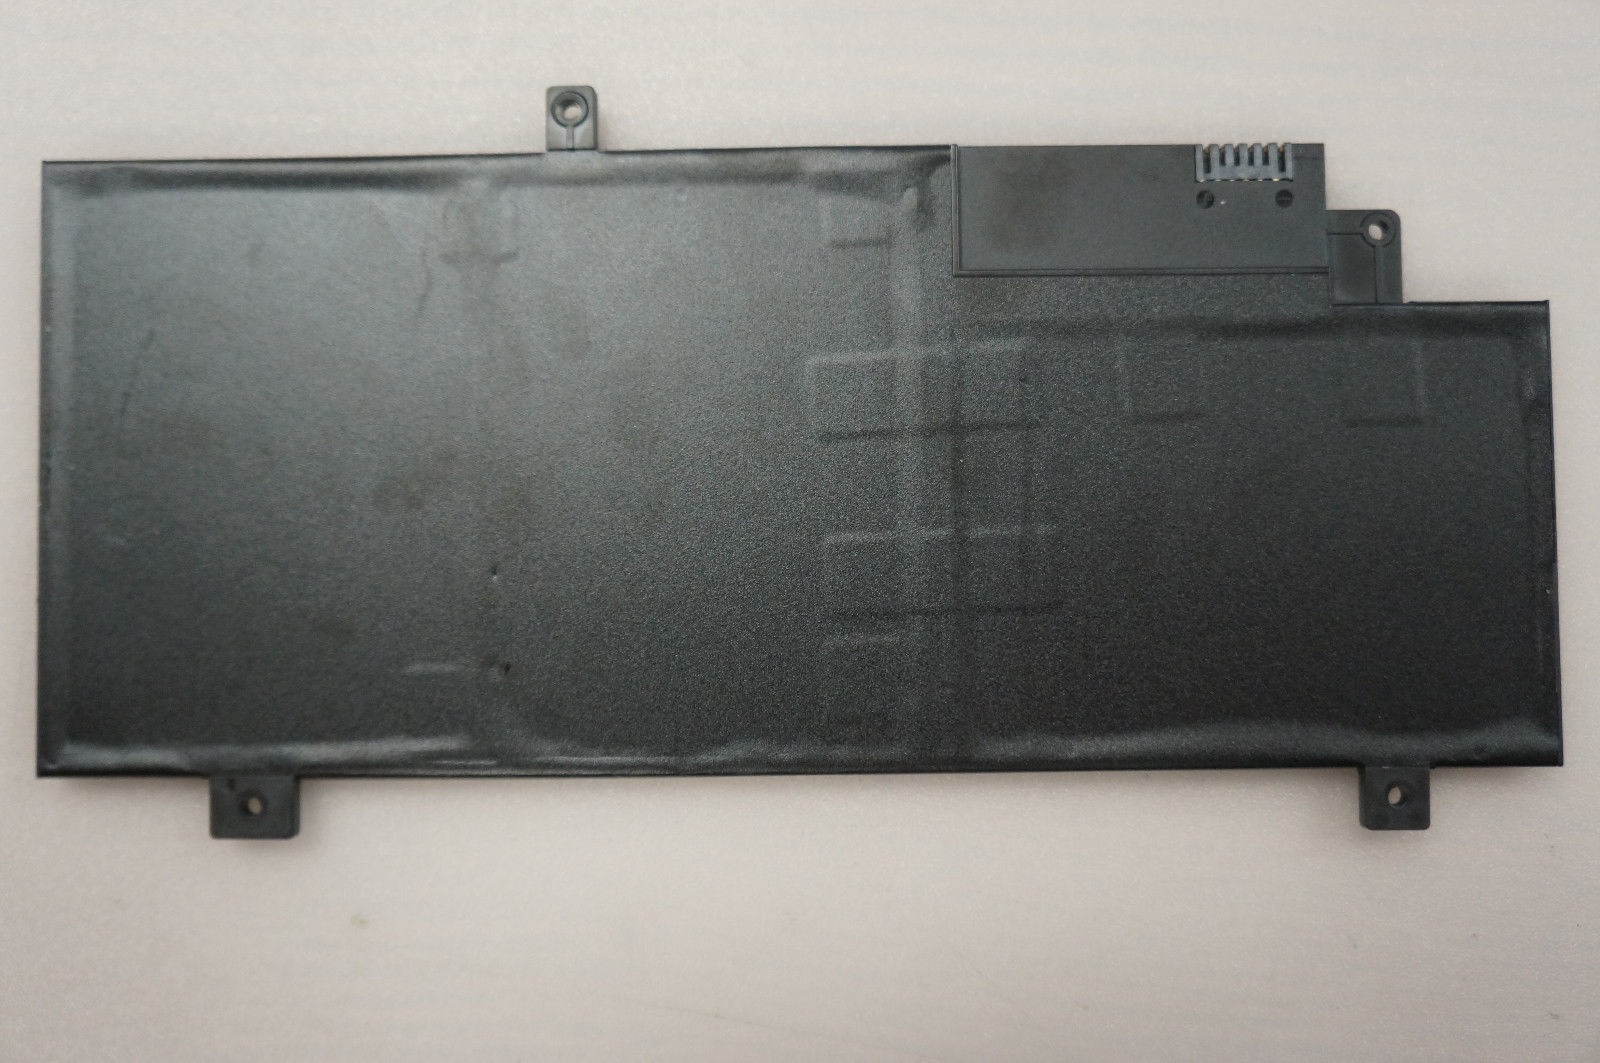 Pin laptop sony vaio BPS34_001